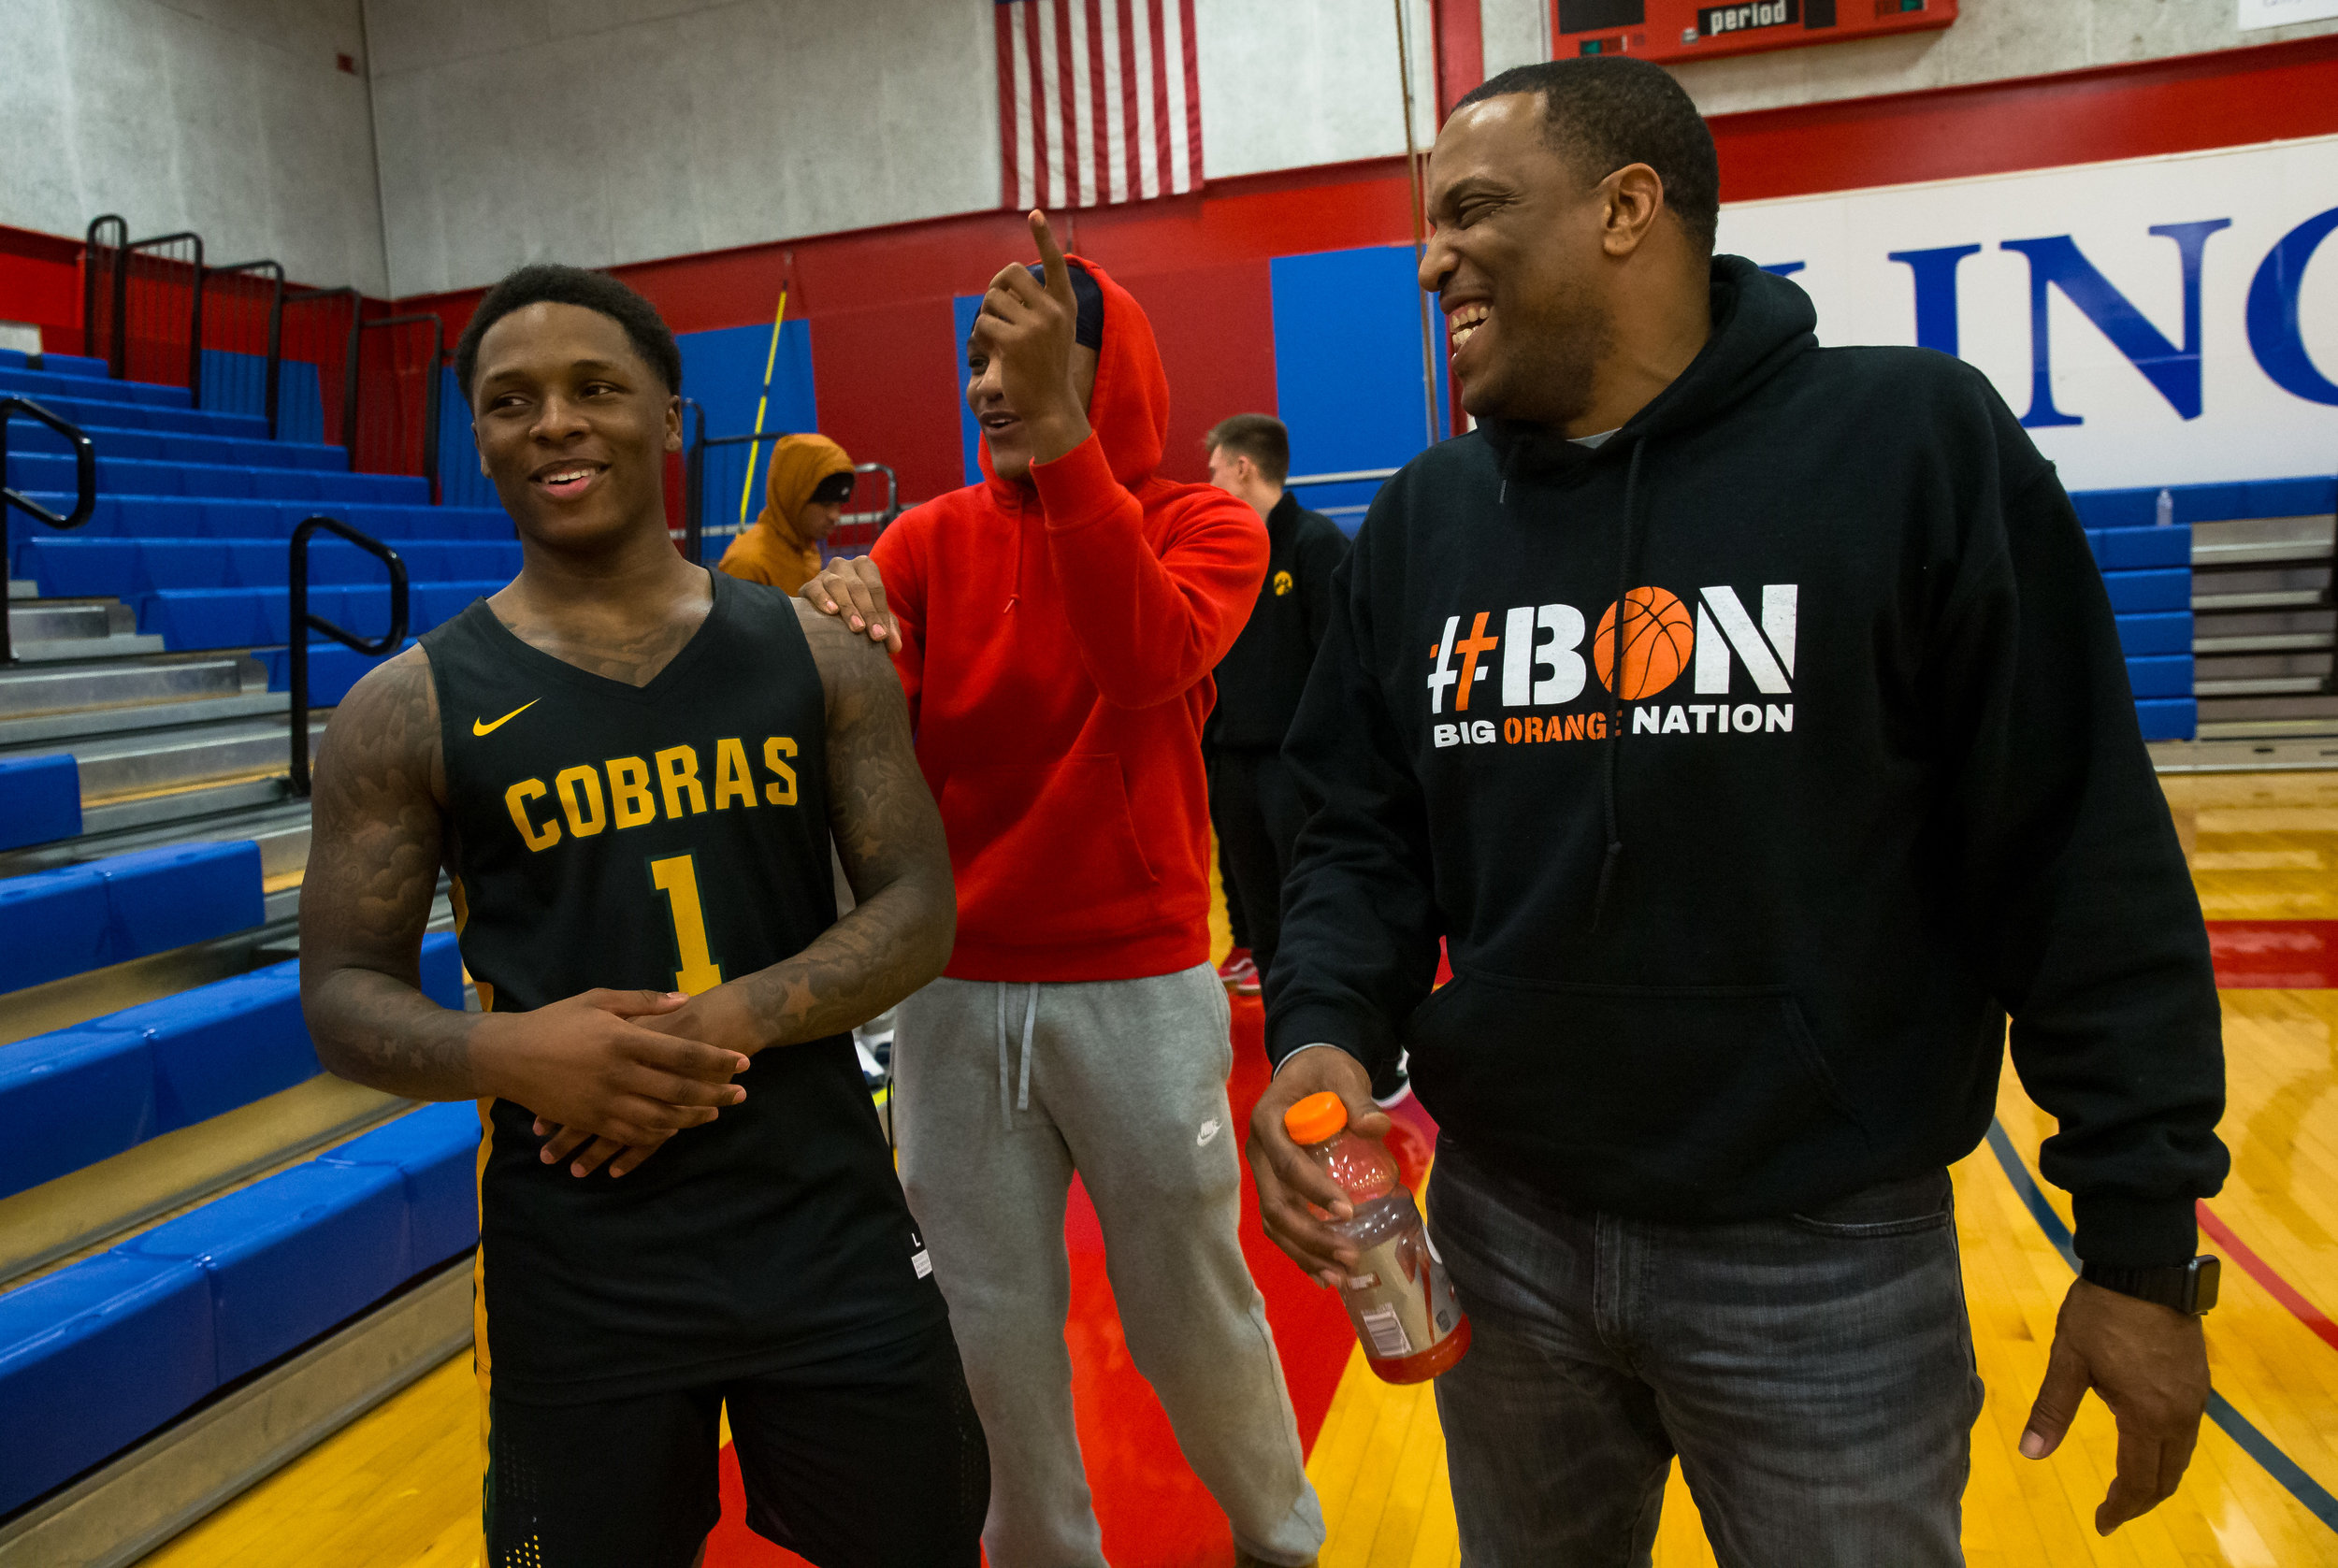 Parkland College's Yaakema Rose Jr. (1) visits with his former coach Blake Turner, right, and teammate Aundrae Williams, center, after the Cobras defeated Lincoln Land Community College 91-59 at Lincoln Land Community College's Cass Gymnasium, Wednesday, Feb. 20, 2019, in Springfield, Ill. [Justin L. Fowler/The State Journal-Register]